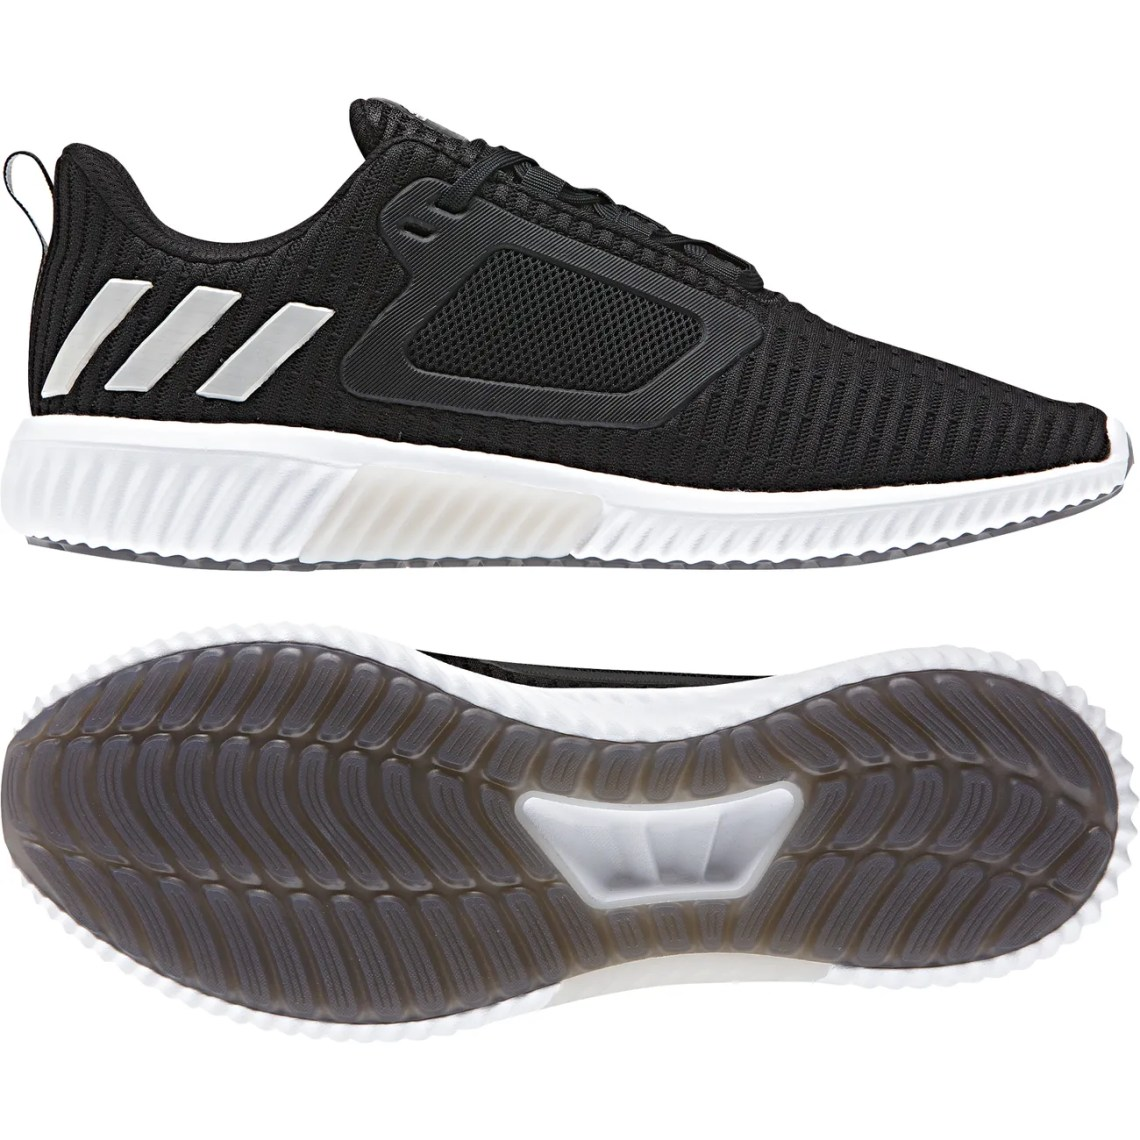 Chaussures Adidas Climacool 7